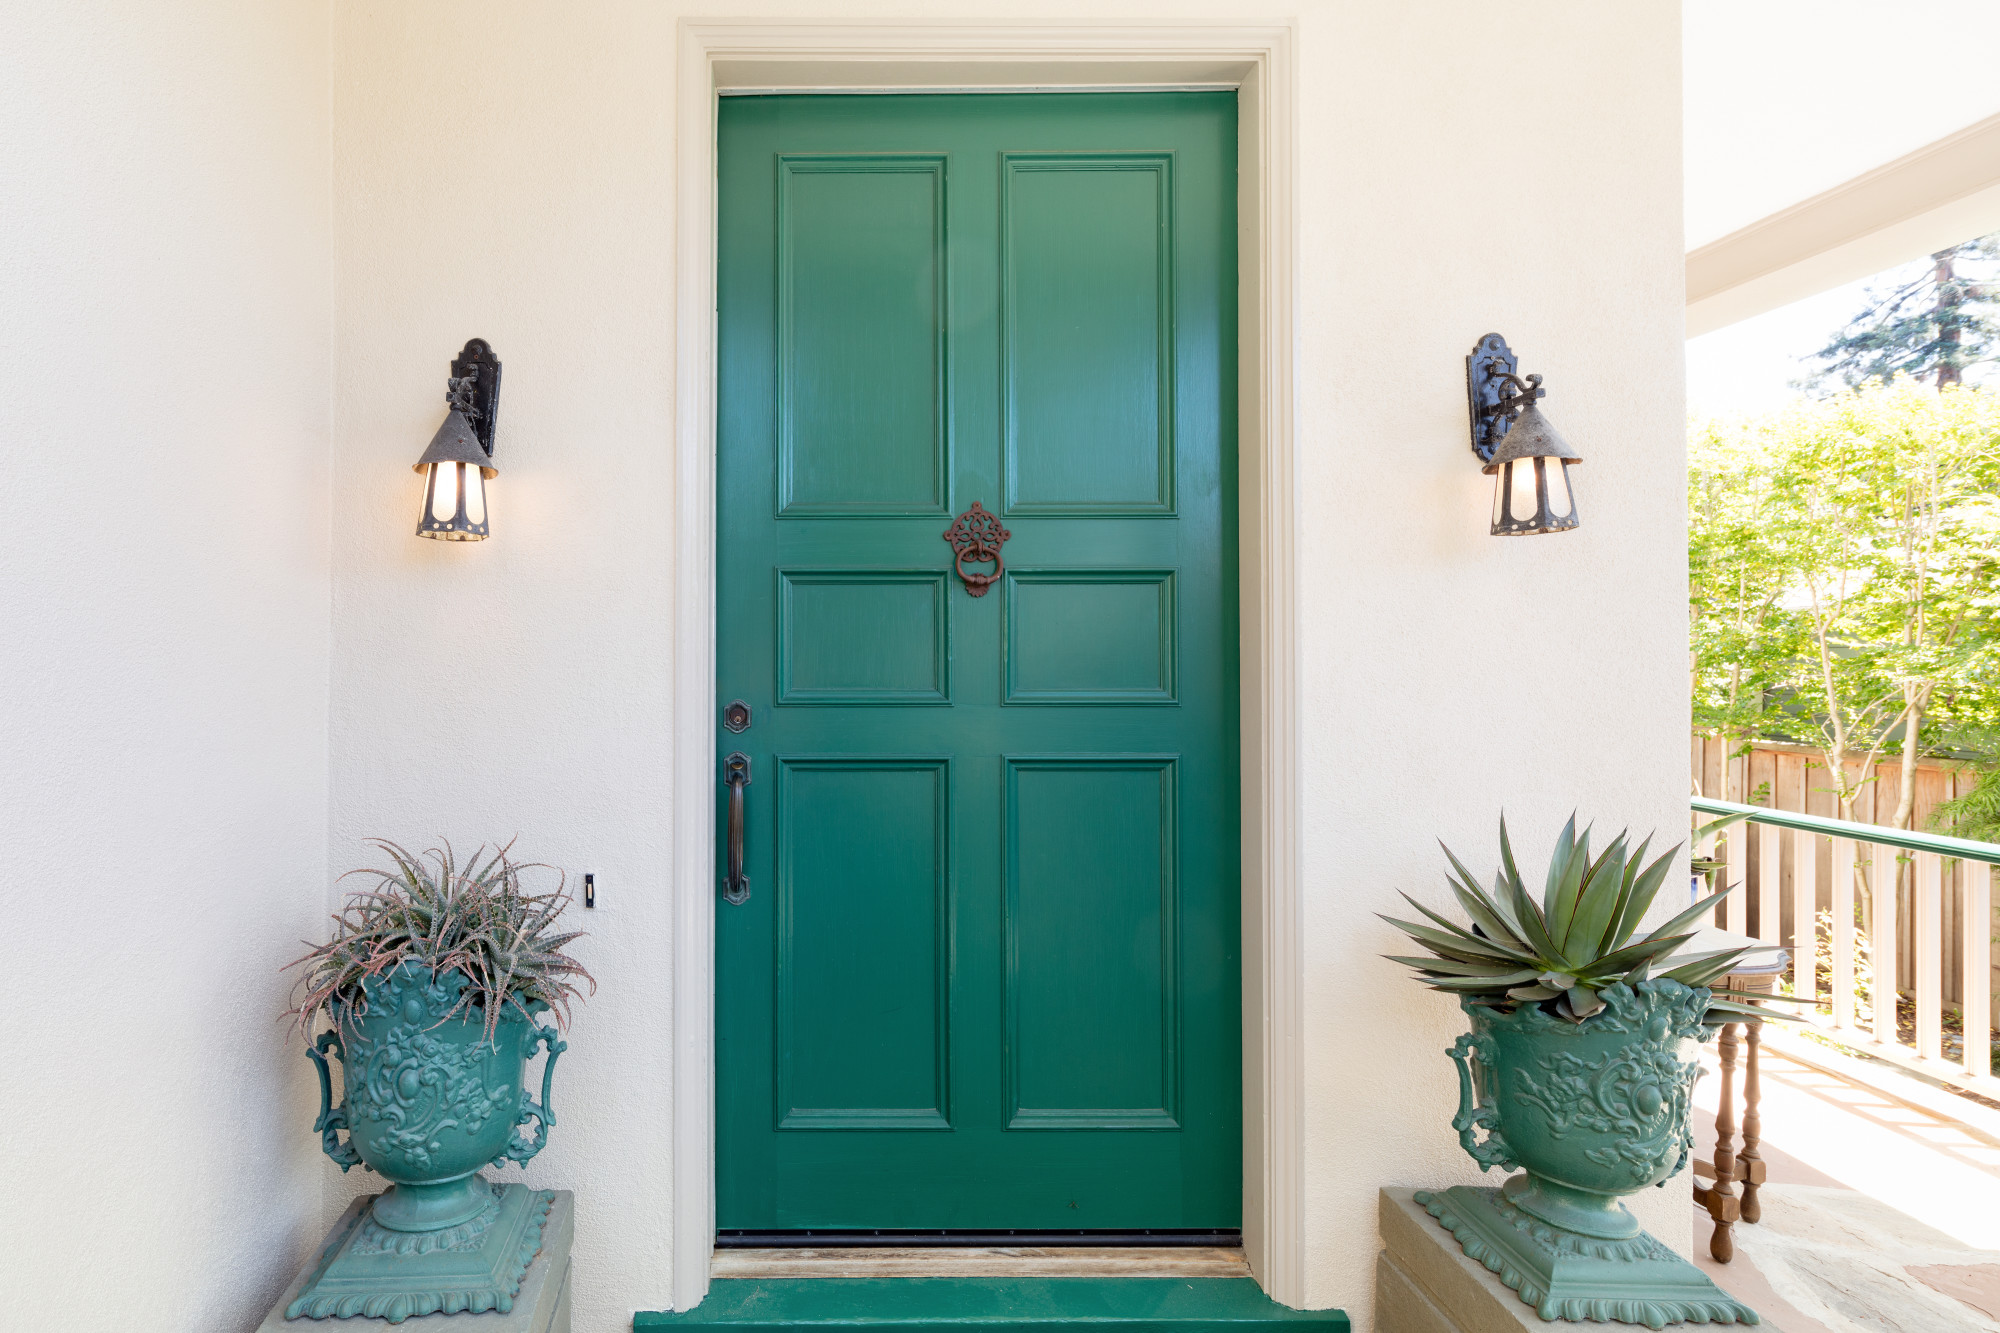 Exterior and interior doors have their own special features. What should you look for? Get the full door buying guide here.